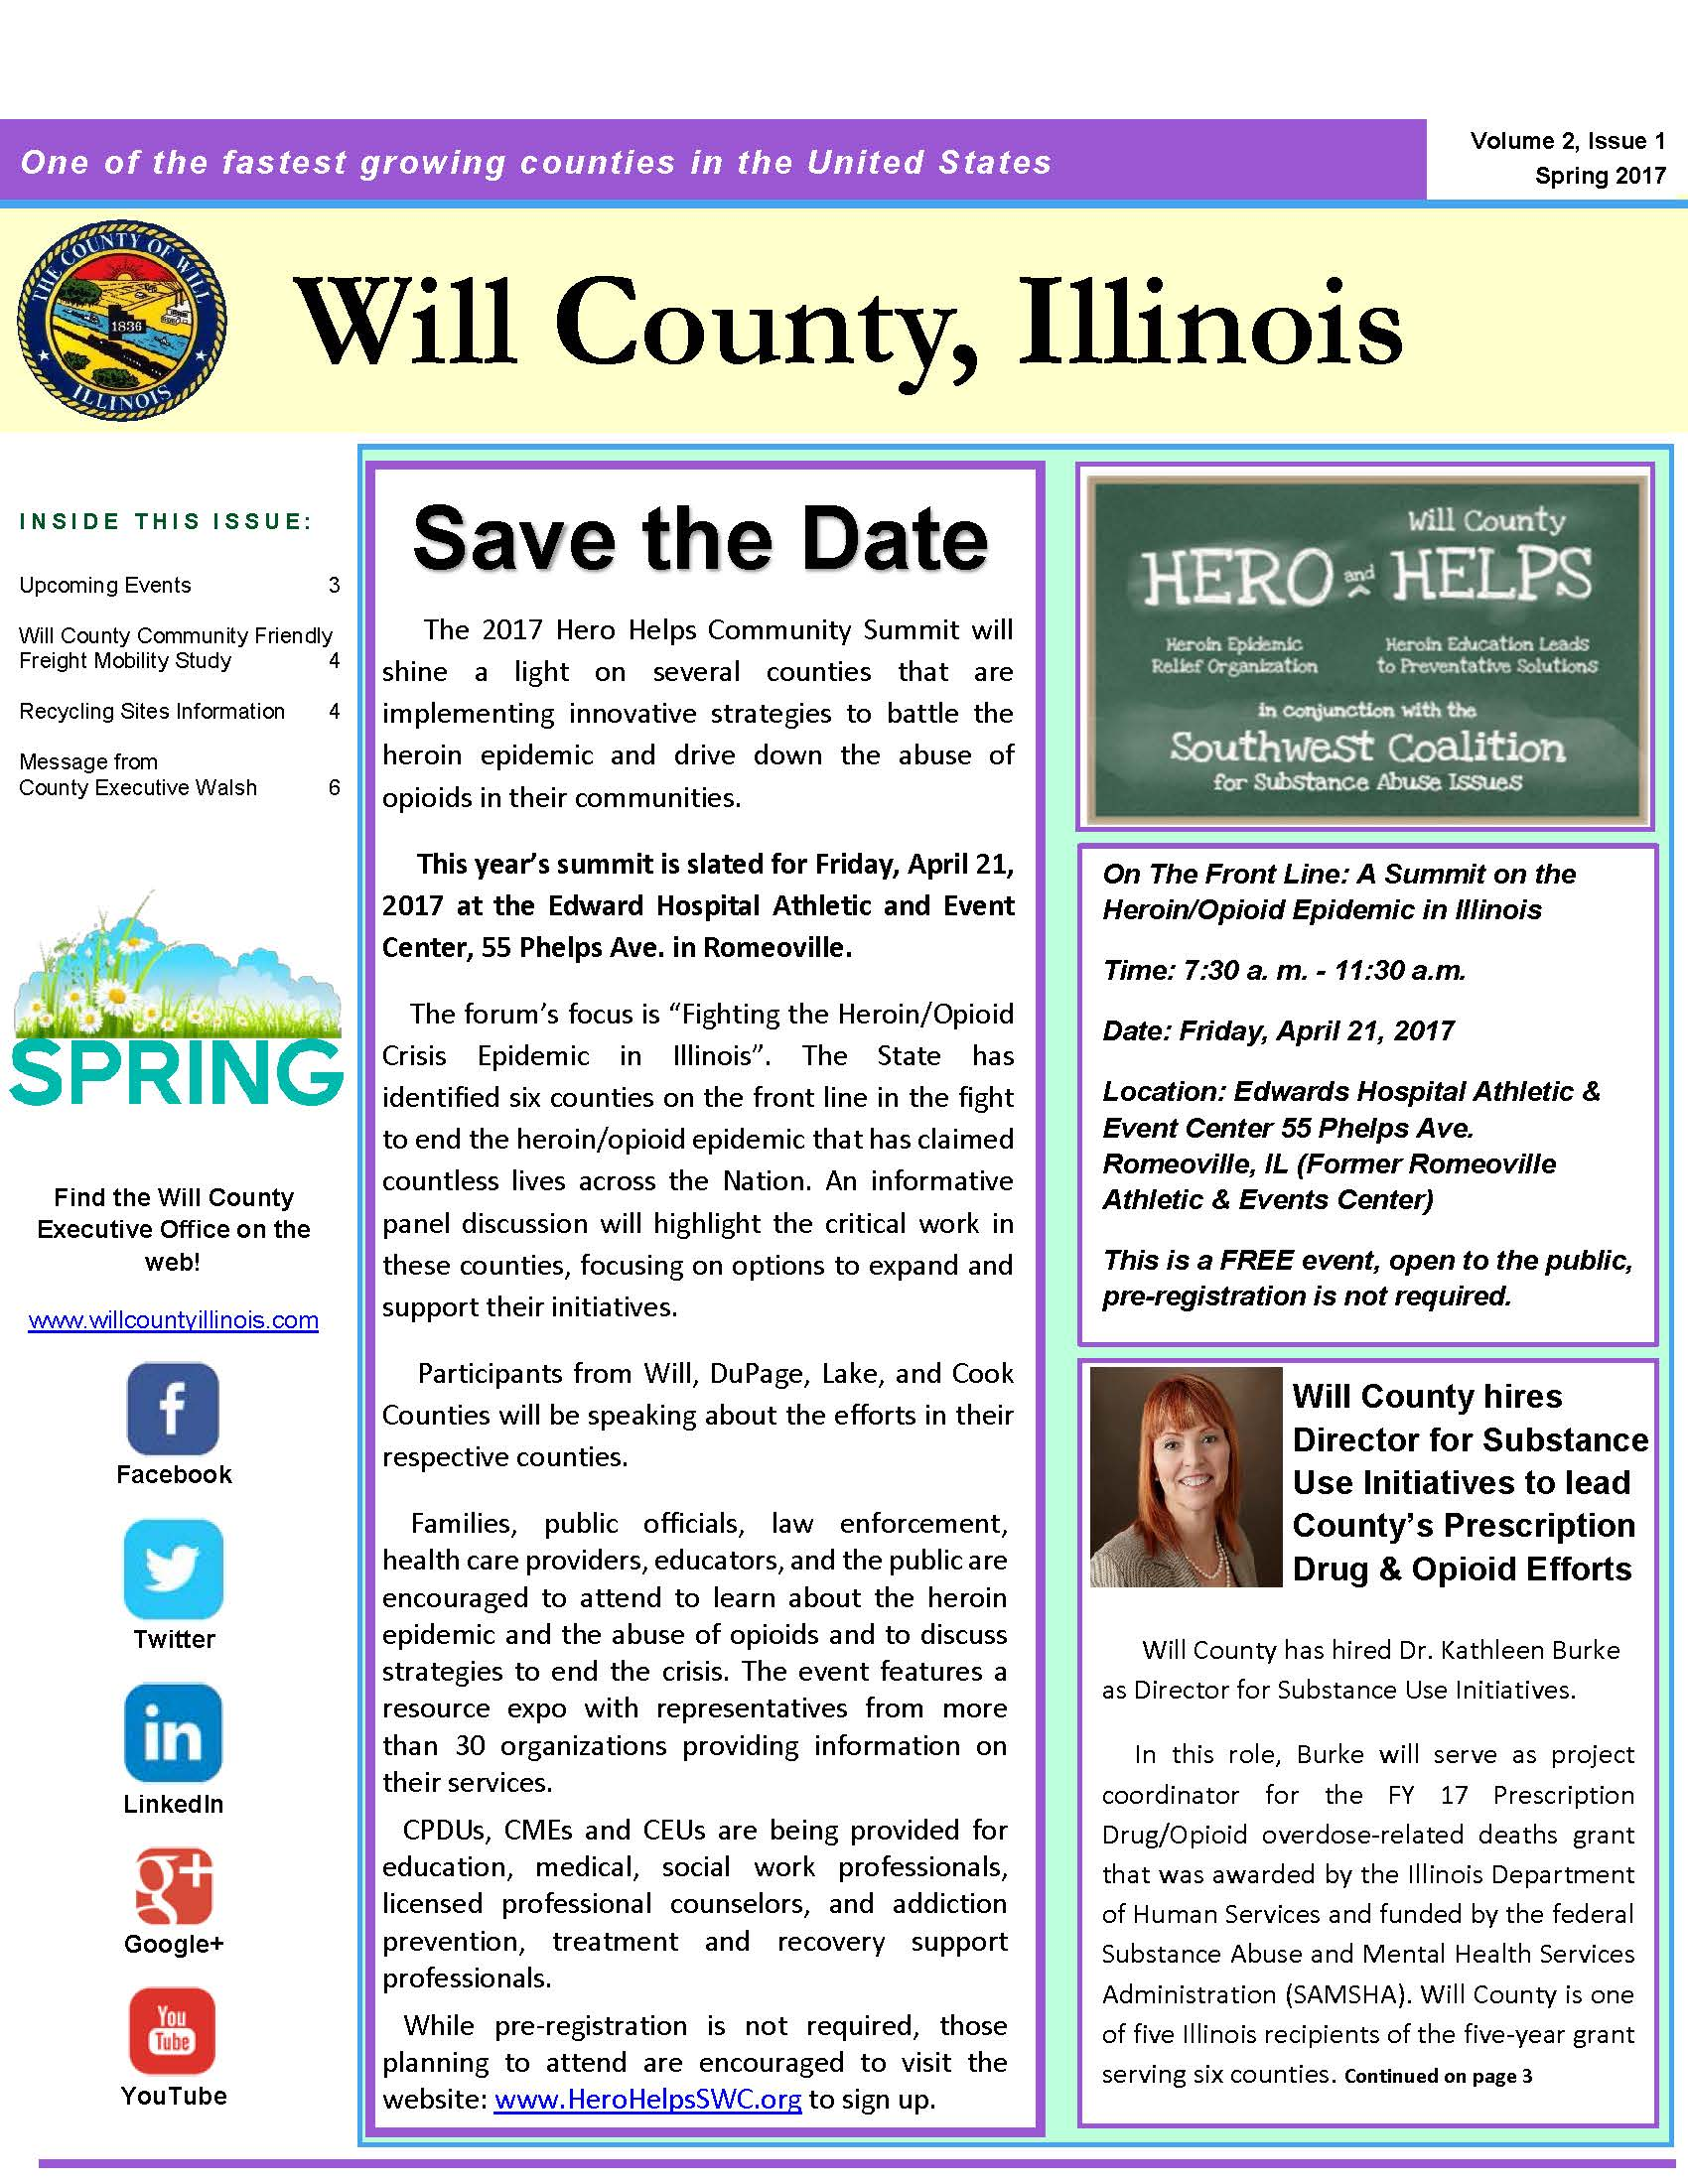 2017 Will County Spring Newsletter